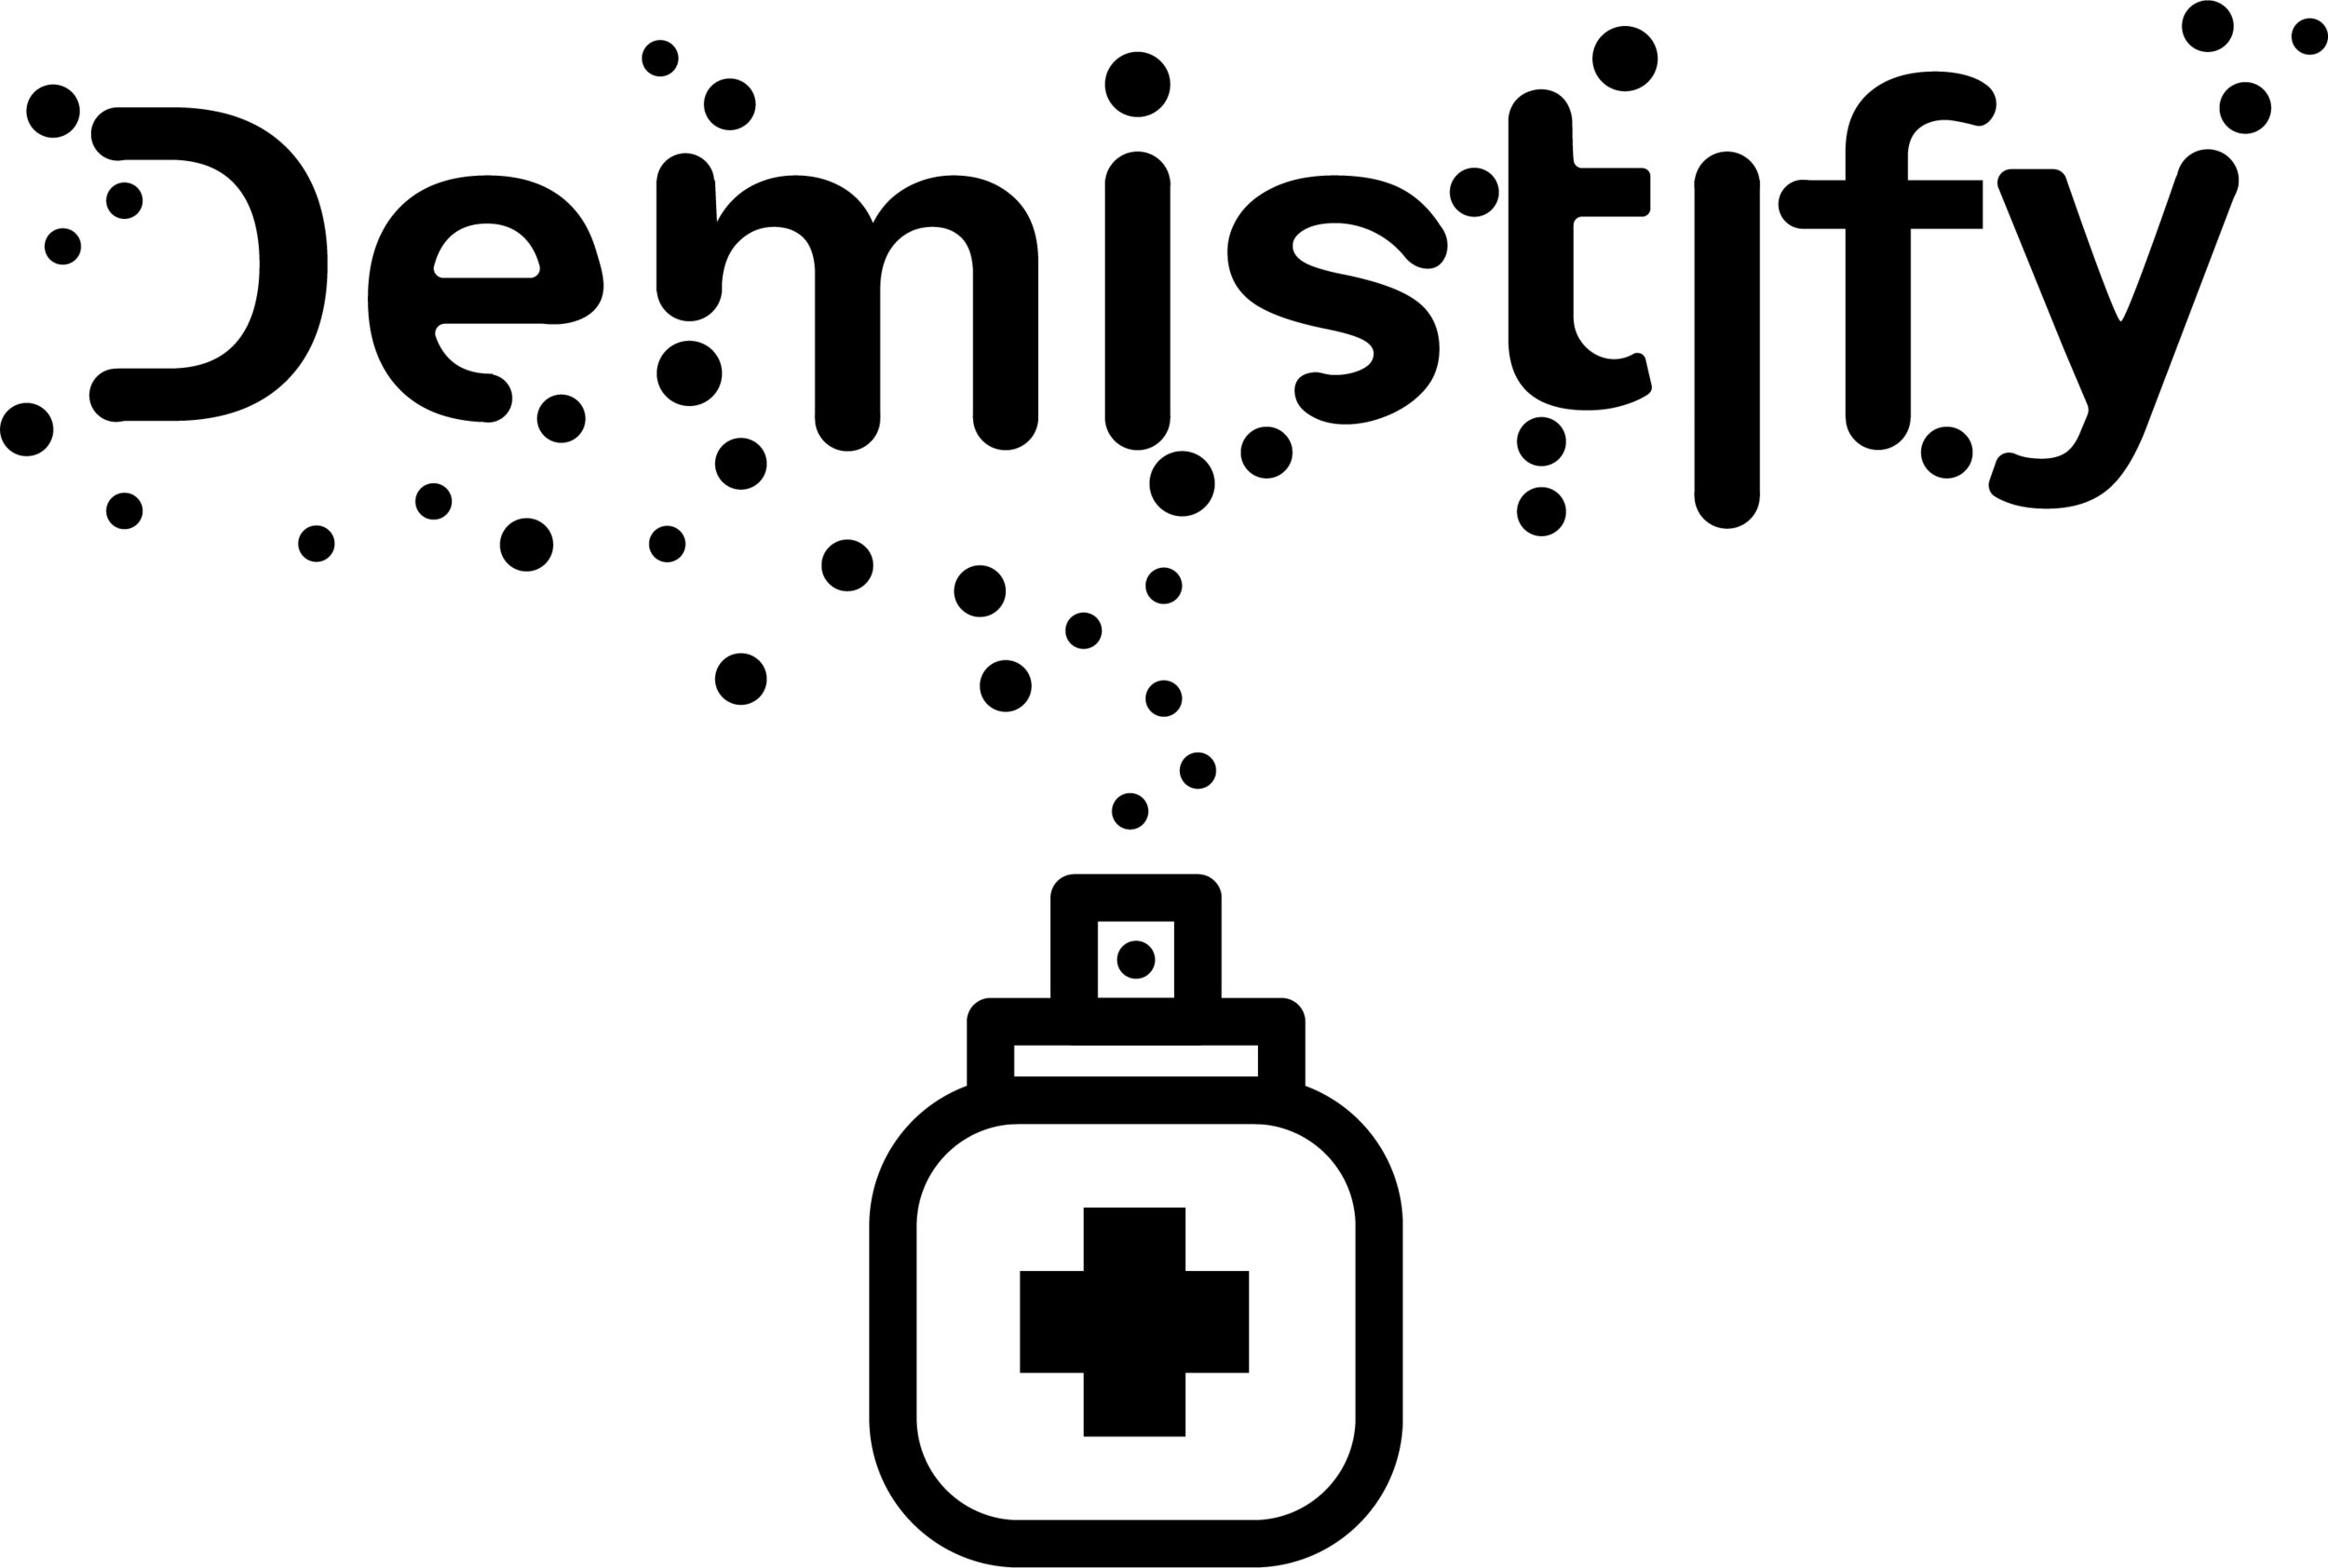 Text with the word 'Demistify' coming out of a line drawing of a perfume bottle